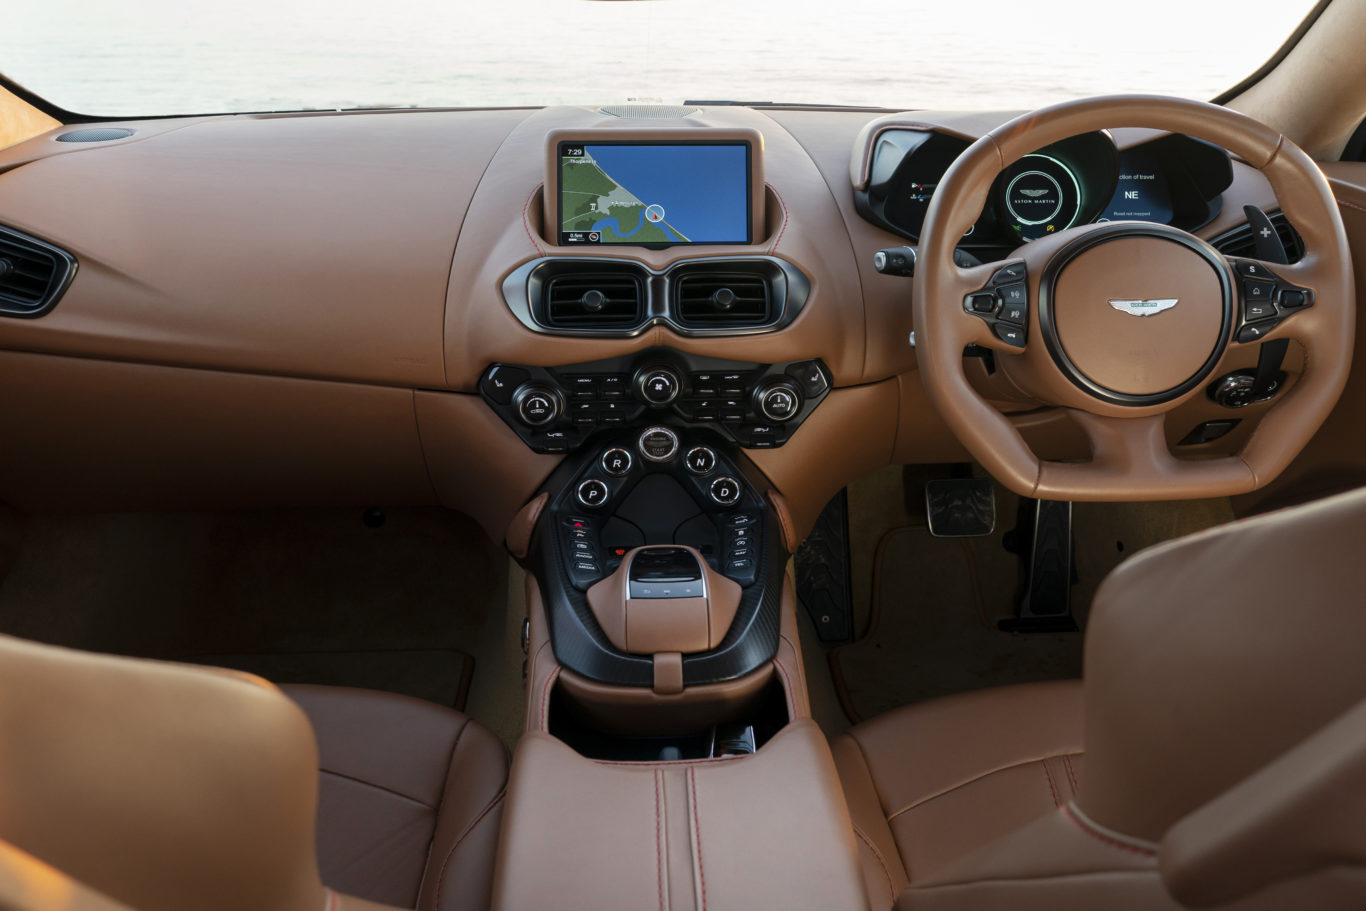 The overall cabin quality in the Vantage is excellent